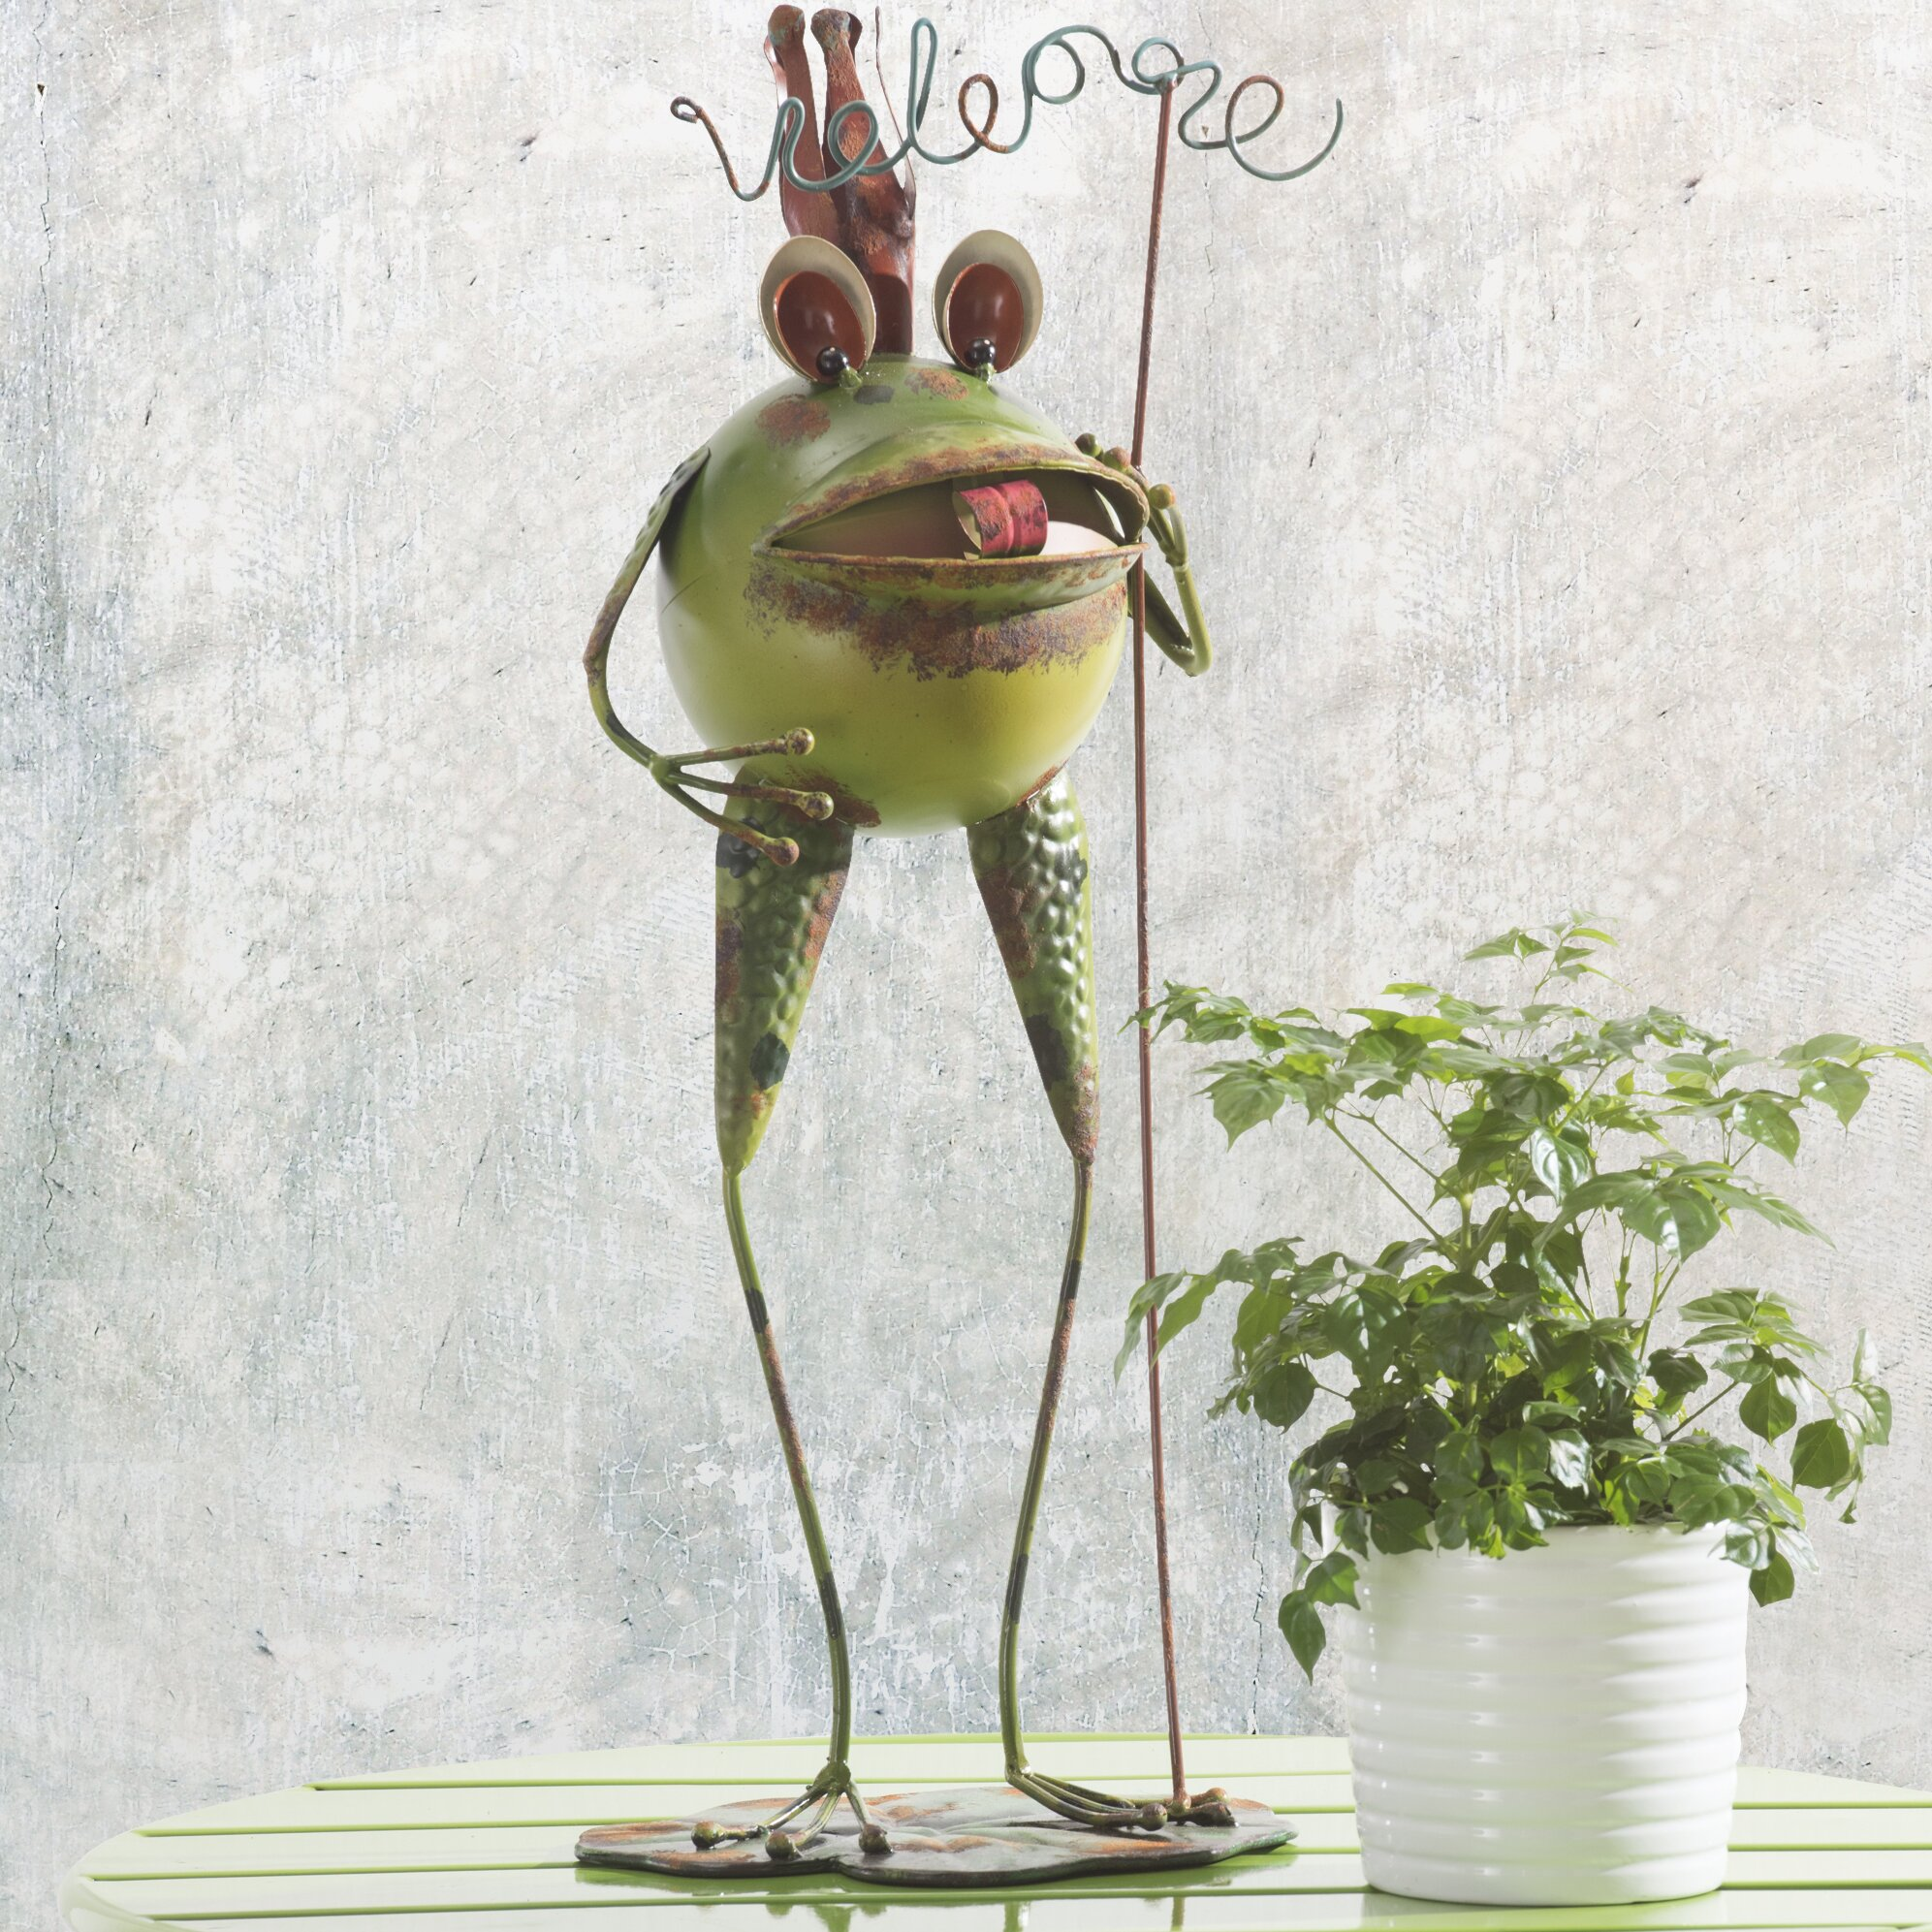 Sunjoy whimsical welcome frog garden statue wayfair for Whimsical garden statues